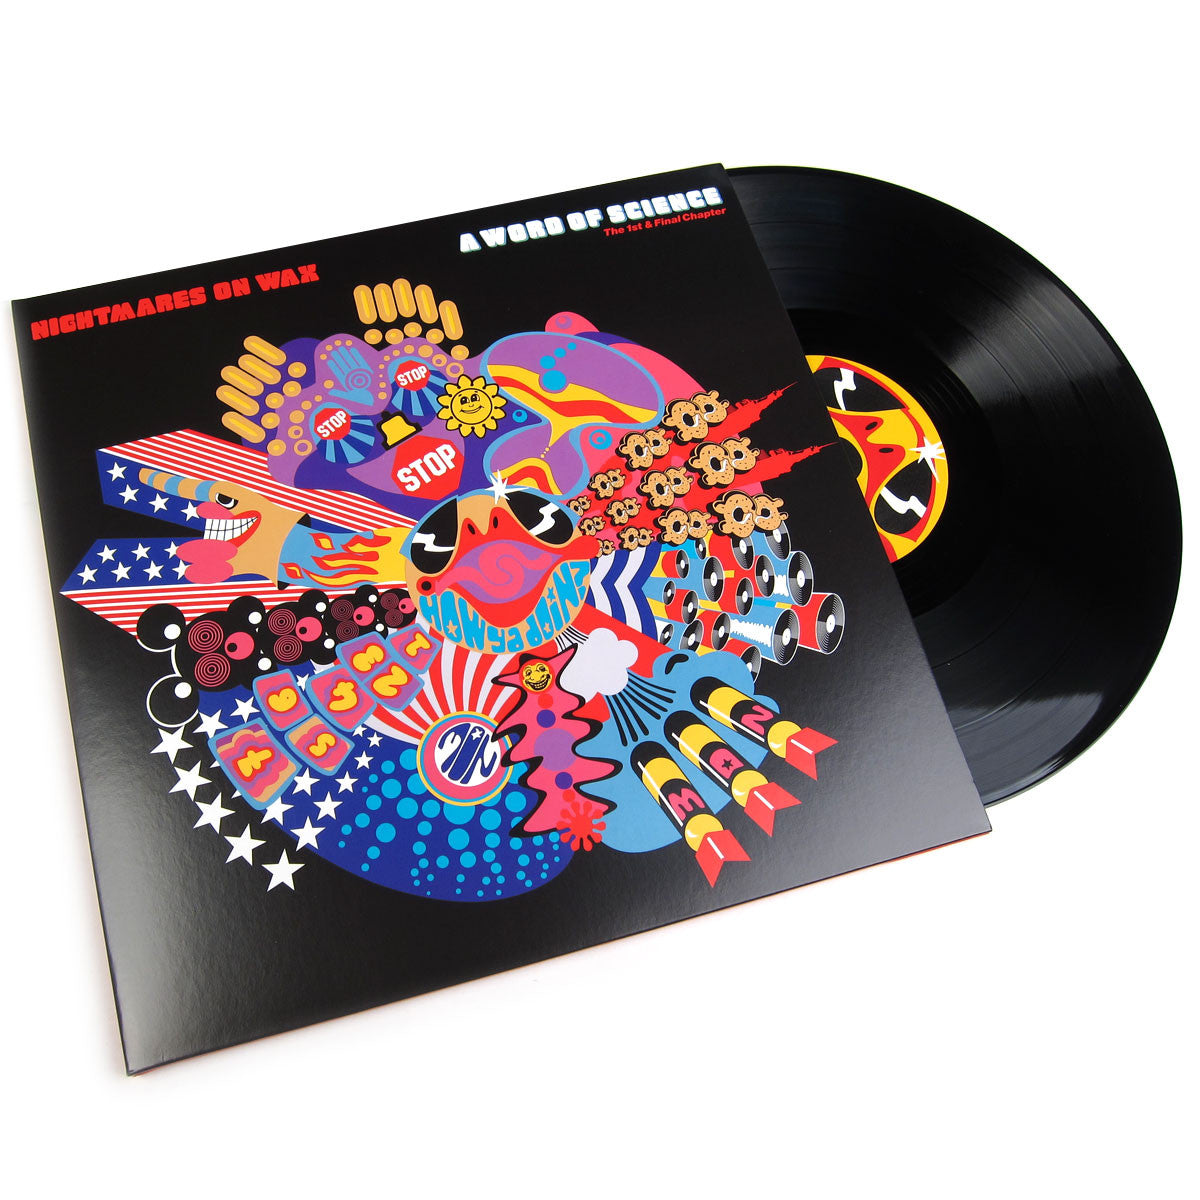 Nightmares On Wax: A Word Of Science - The 1st & Final Chapter (Free MP3) Vinyl 2LP